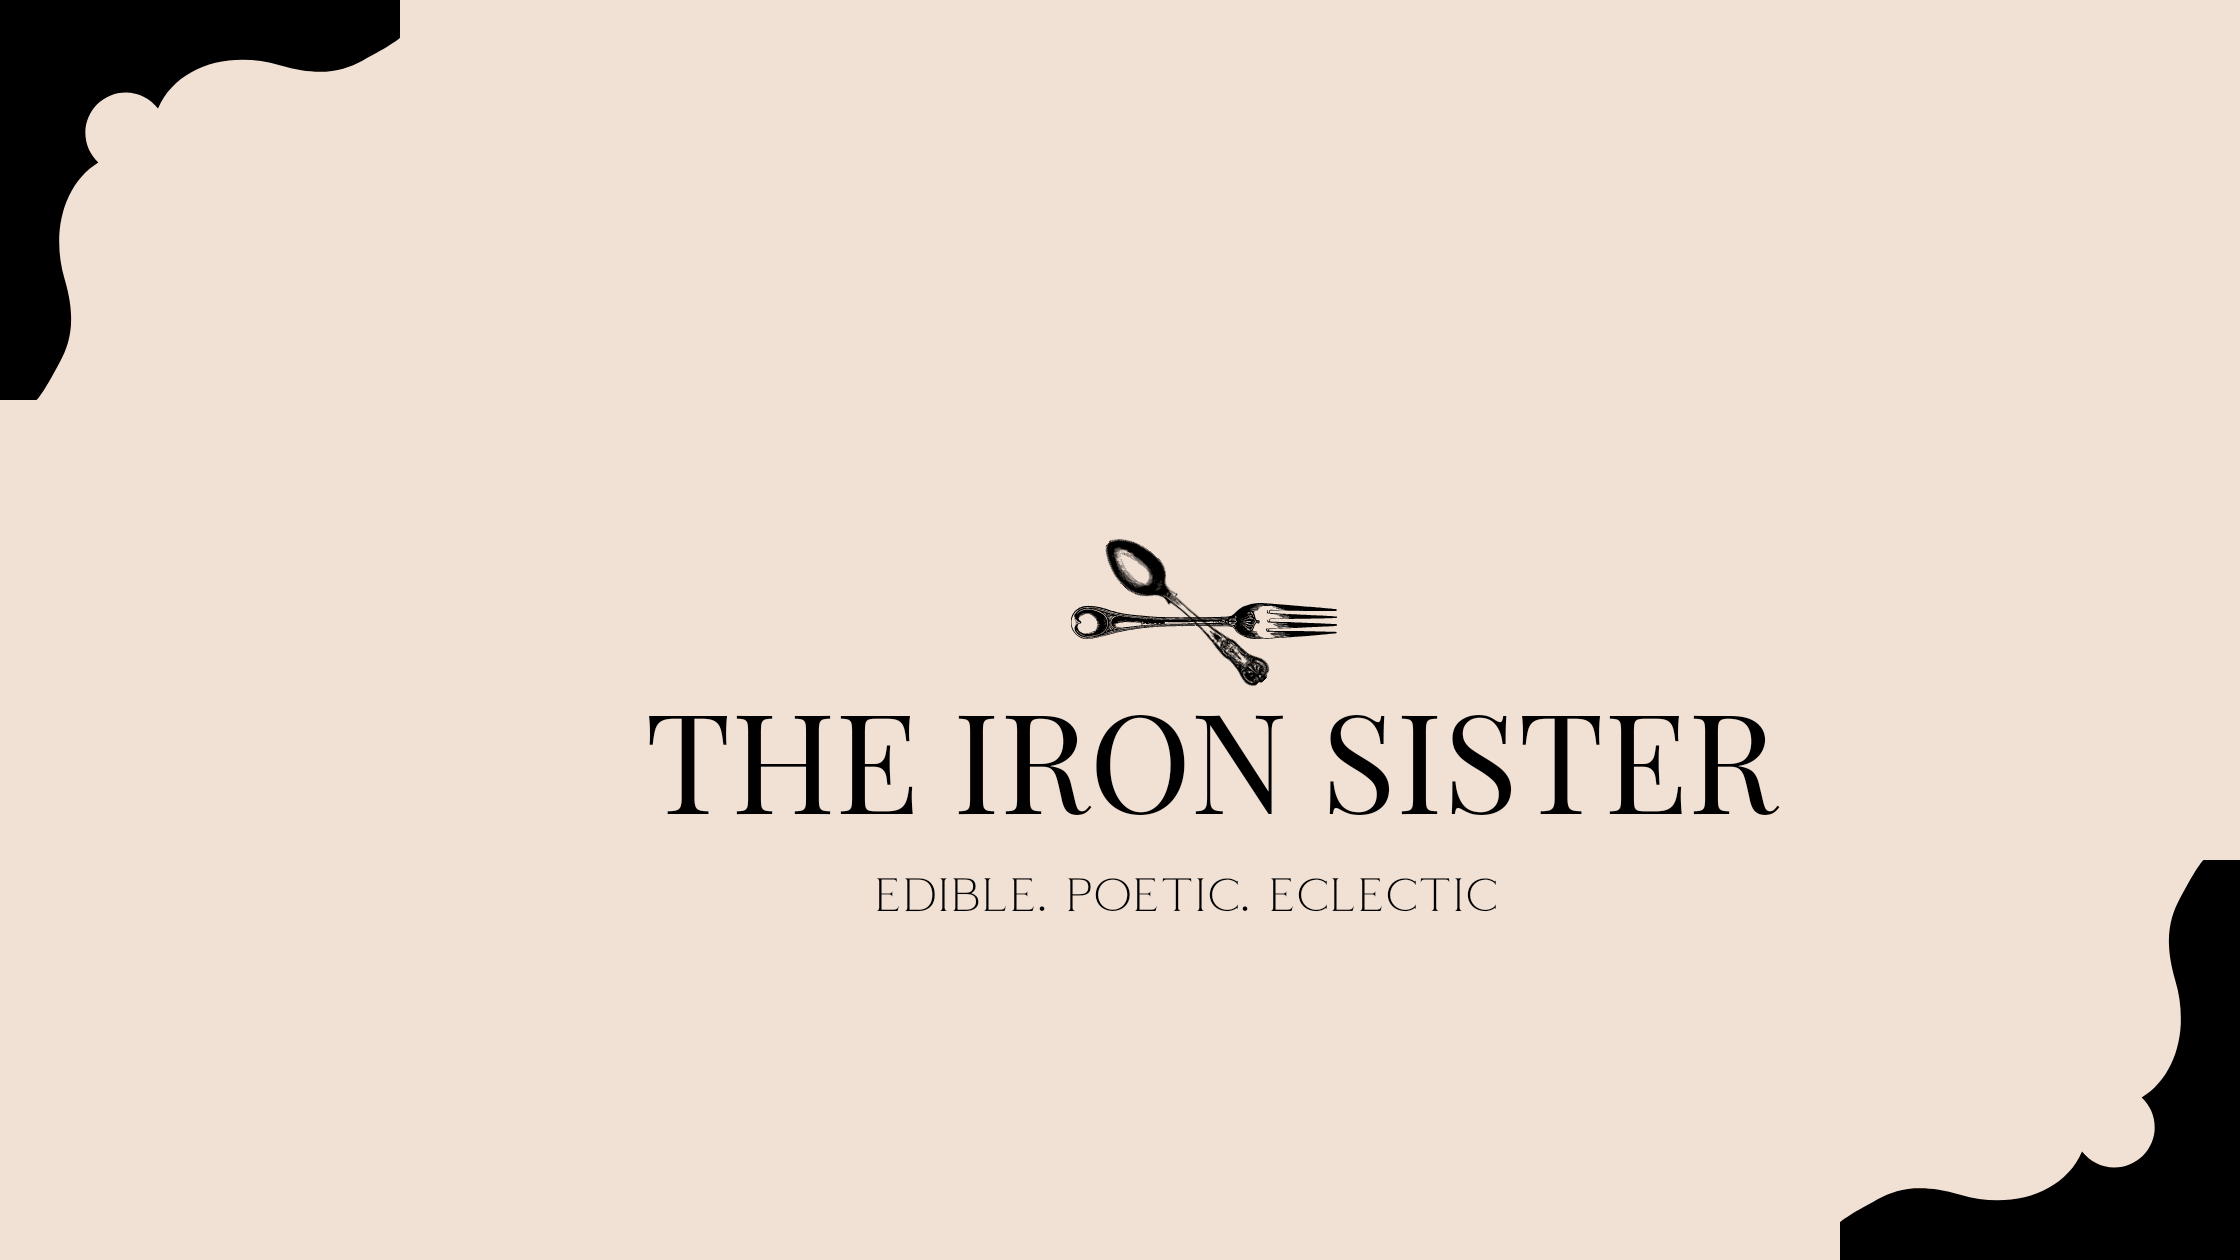 The Iron Sister